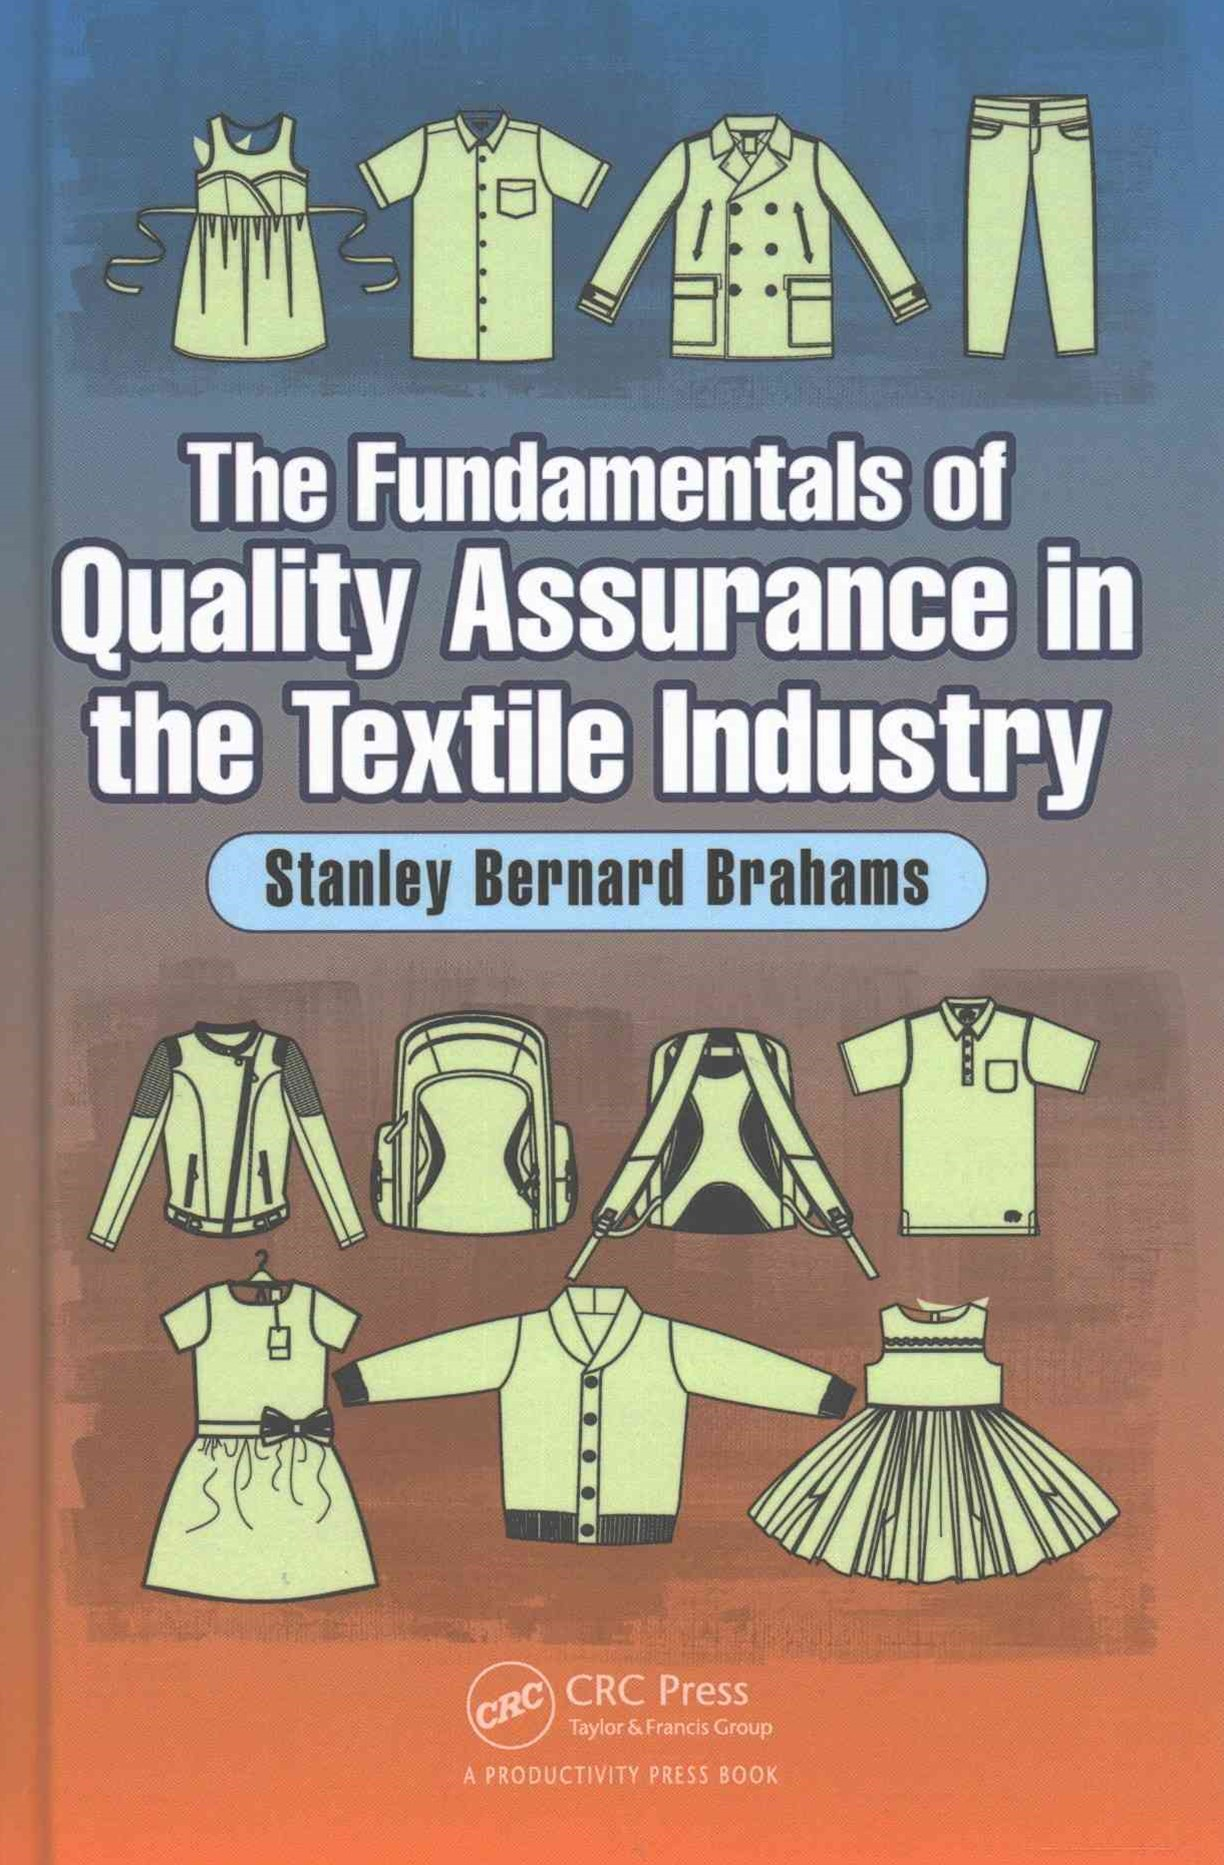 Fundamentals of Quality Assurance in the Textile Industry